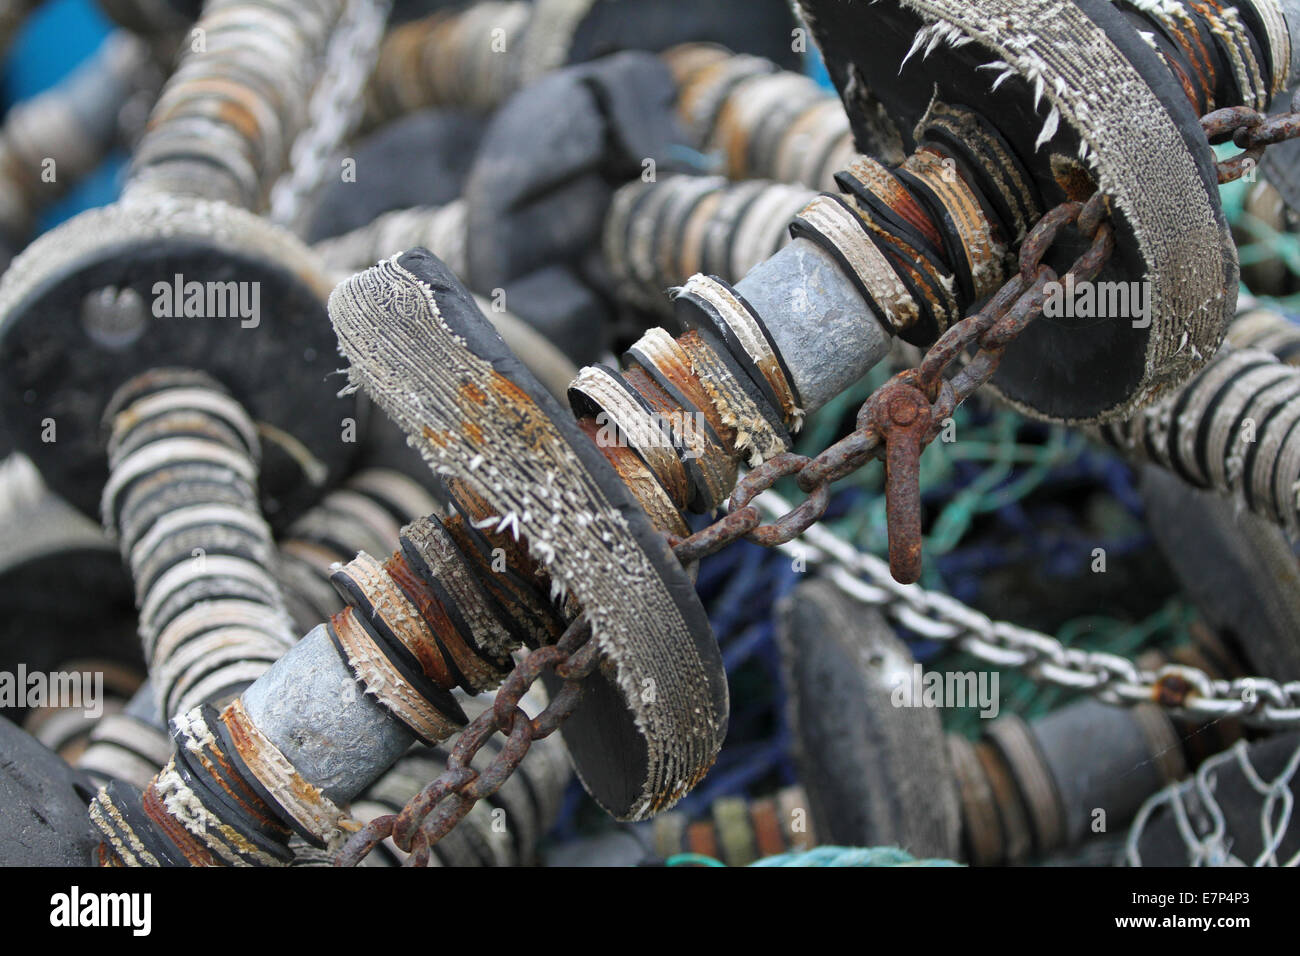 Commercial trawler fishing nets, ropes, chains, bobbins and spacers, drying on the quayside at Scarborough, North - Stock Image